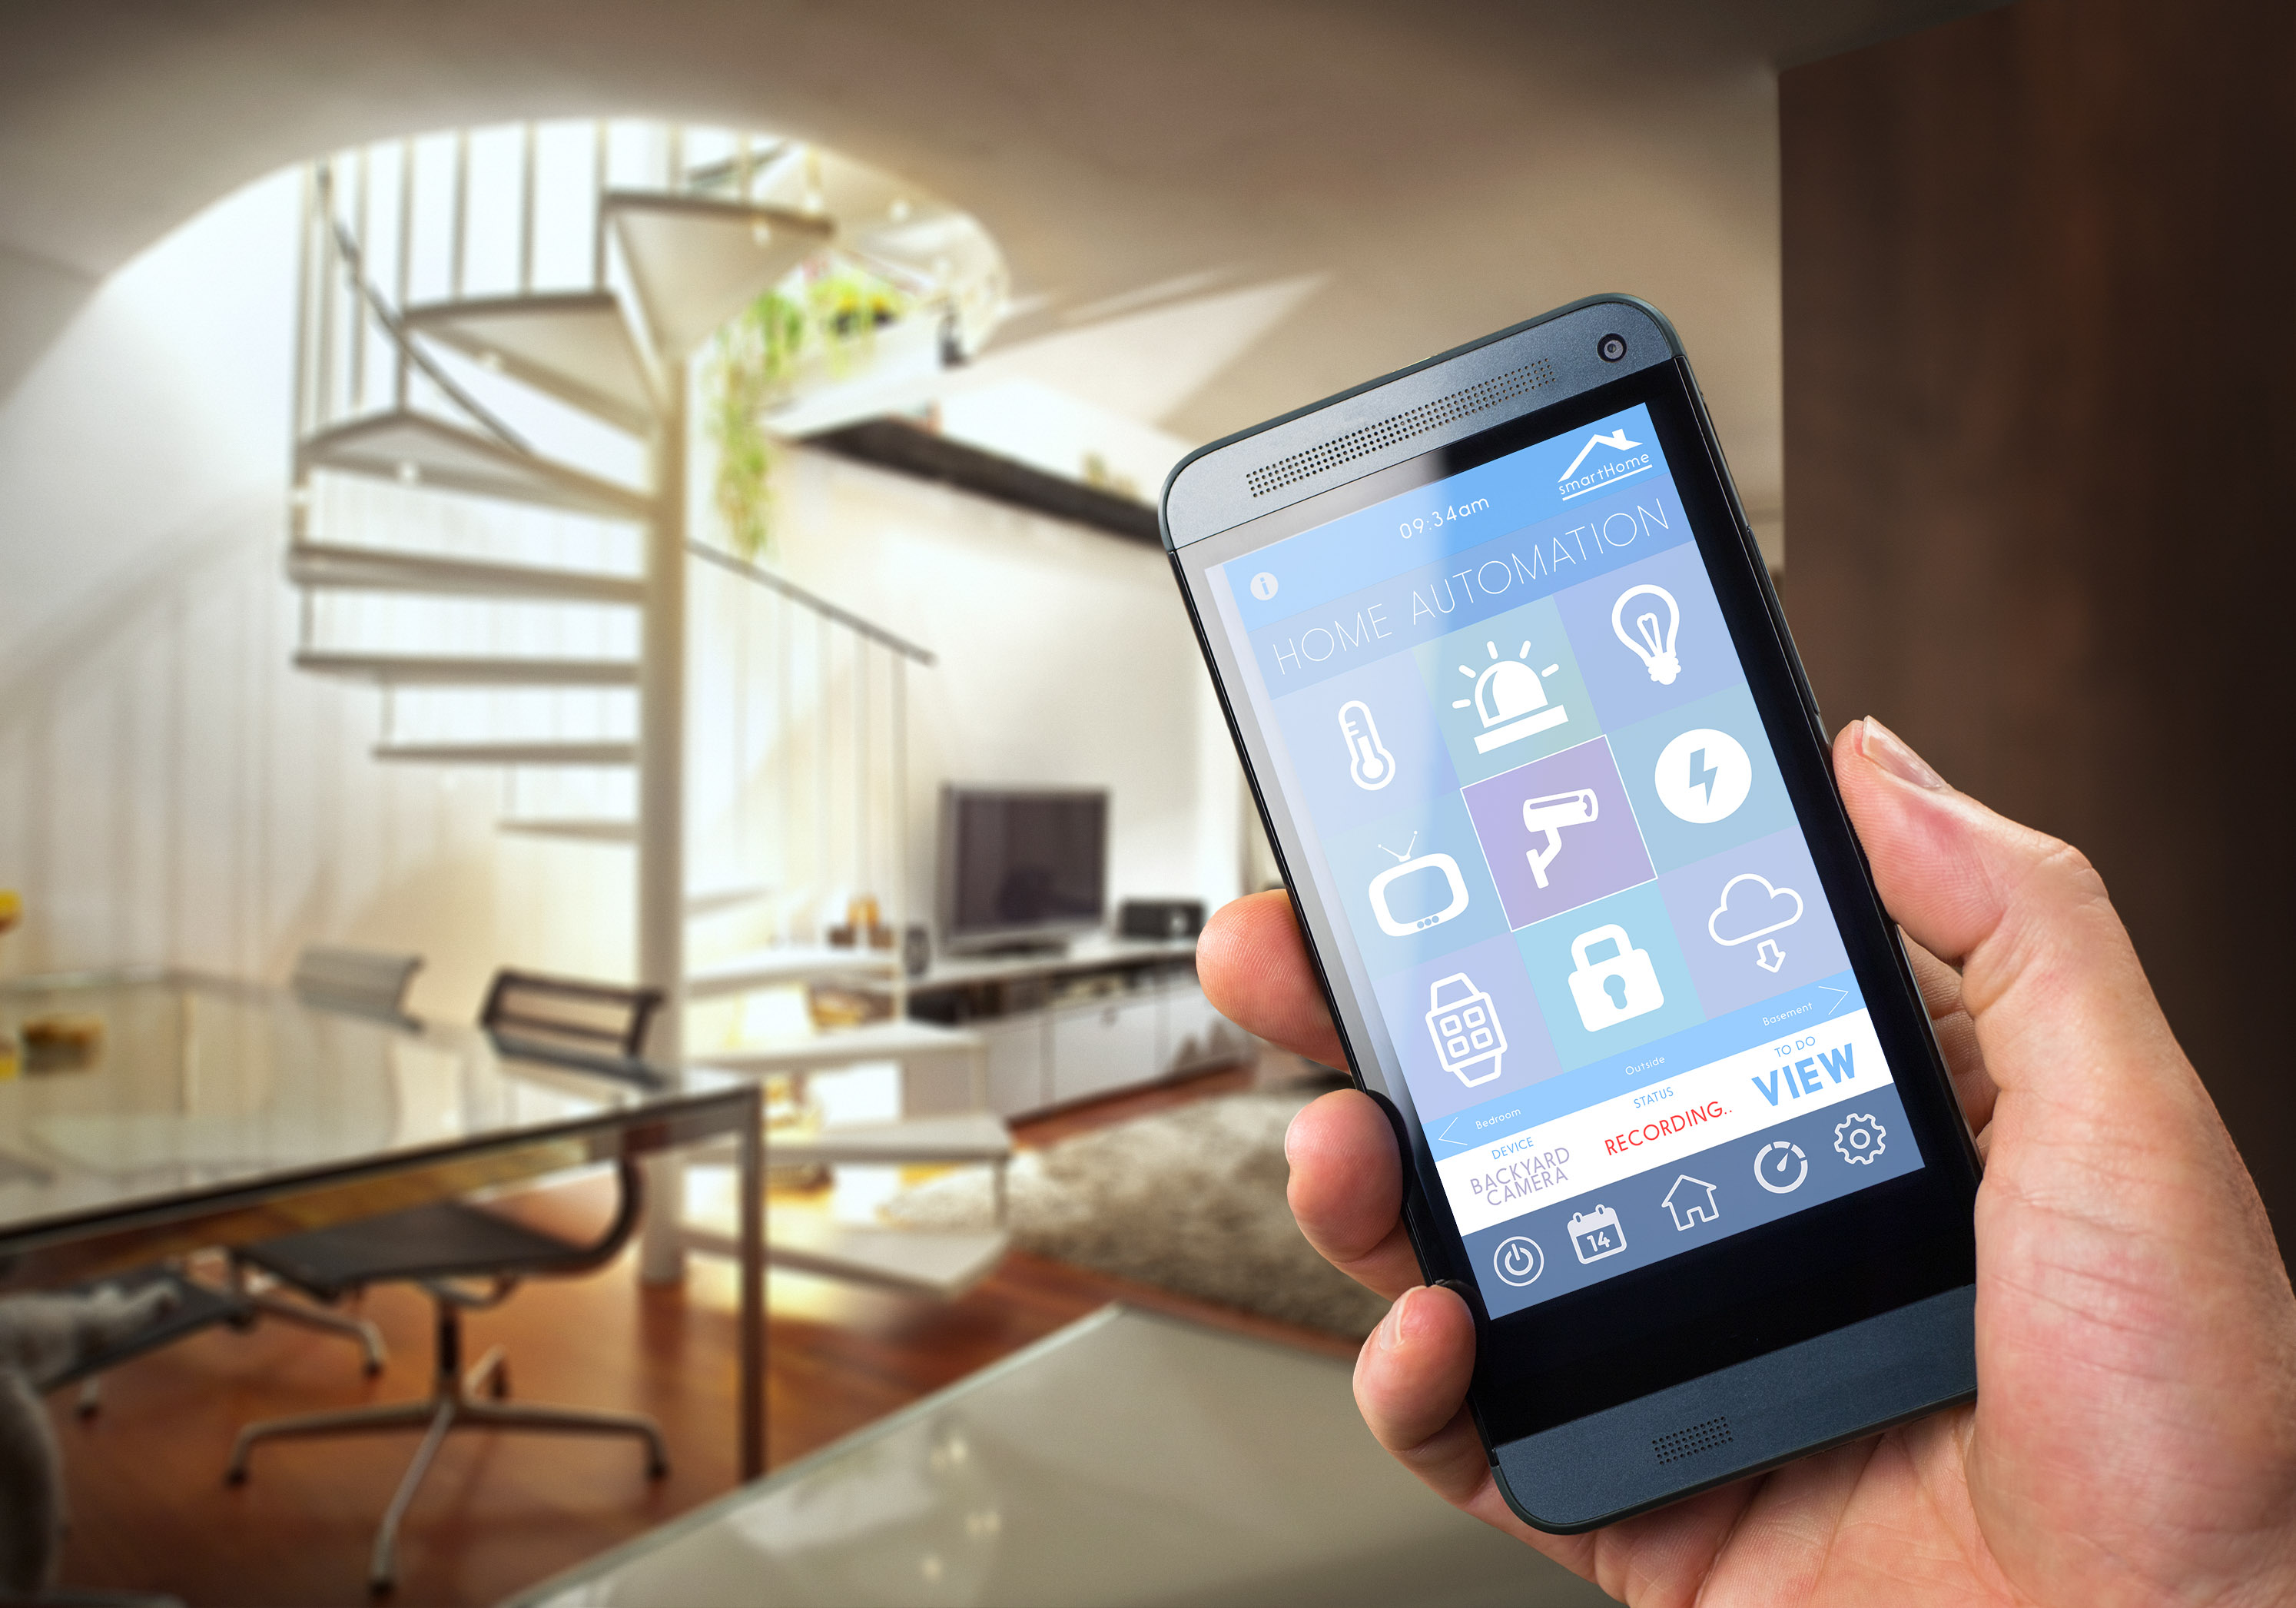 Smart House Phone safe smart houses: soon you will live in one too